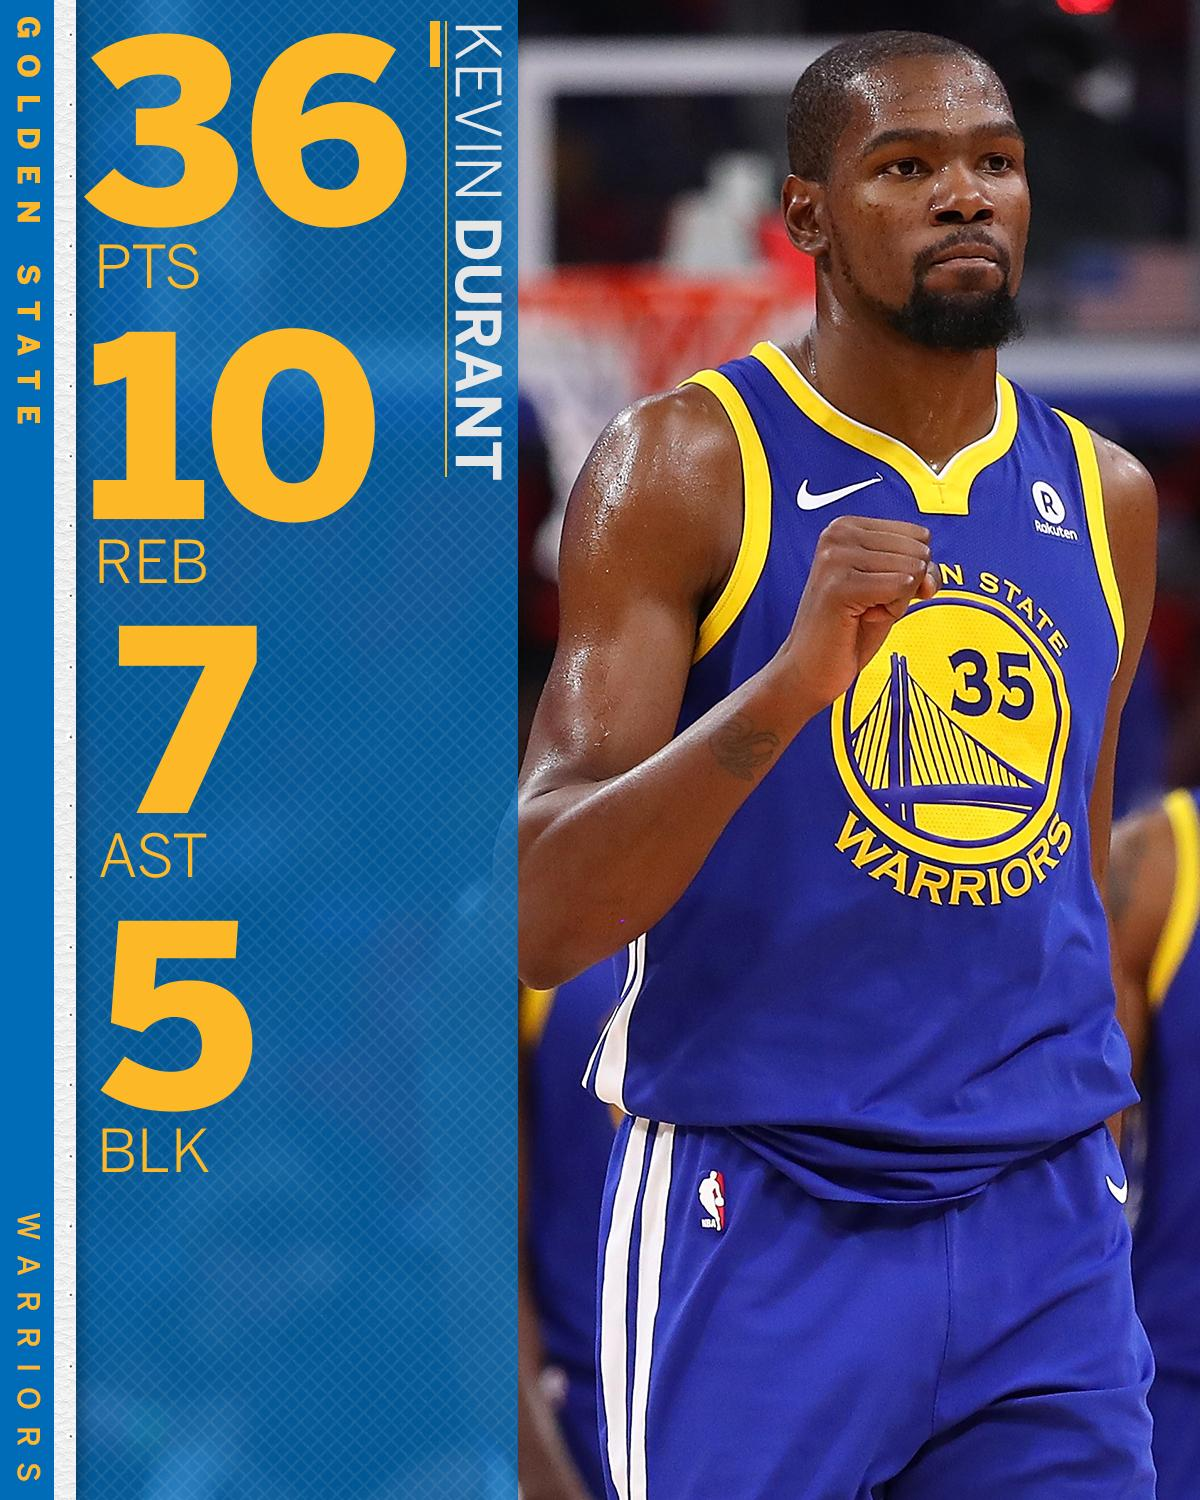 KD is the first Warriors player to ever reach 35 points, 10 boards, 5 assists and 5 blocks in a game. https://t.co/2cE2NAiVOW